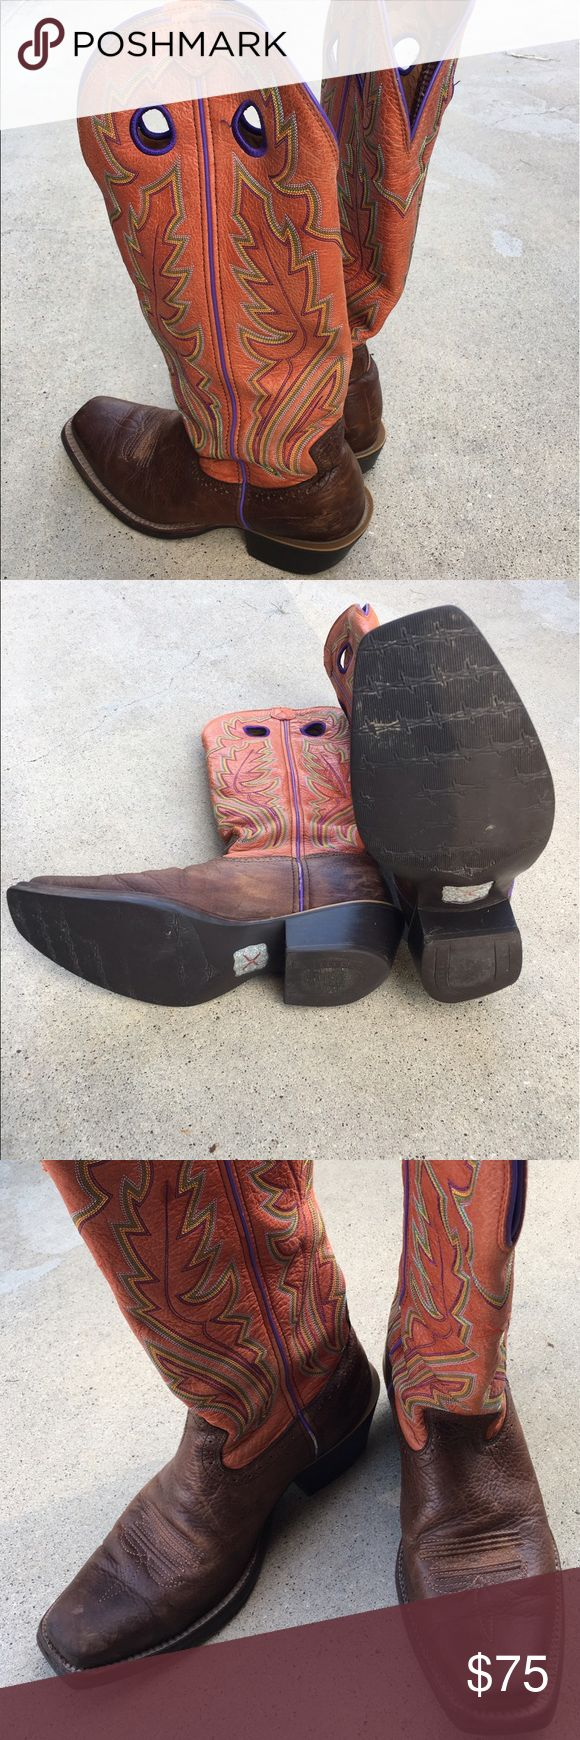 Twisted-X 9.5D buckaroo boots Salmon boot shaft purple/green stitching. Slightly worn Good Used Condition still lots of wear left in boot. Will consider offers Twisted X Shoes Cowboy & Western Boots